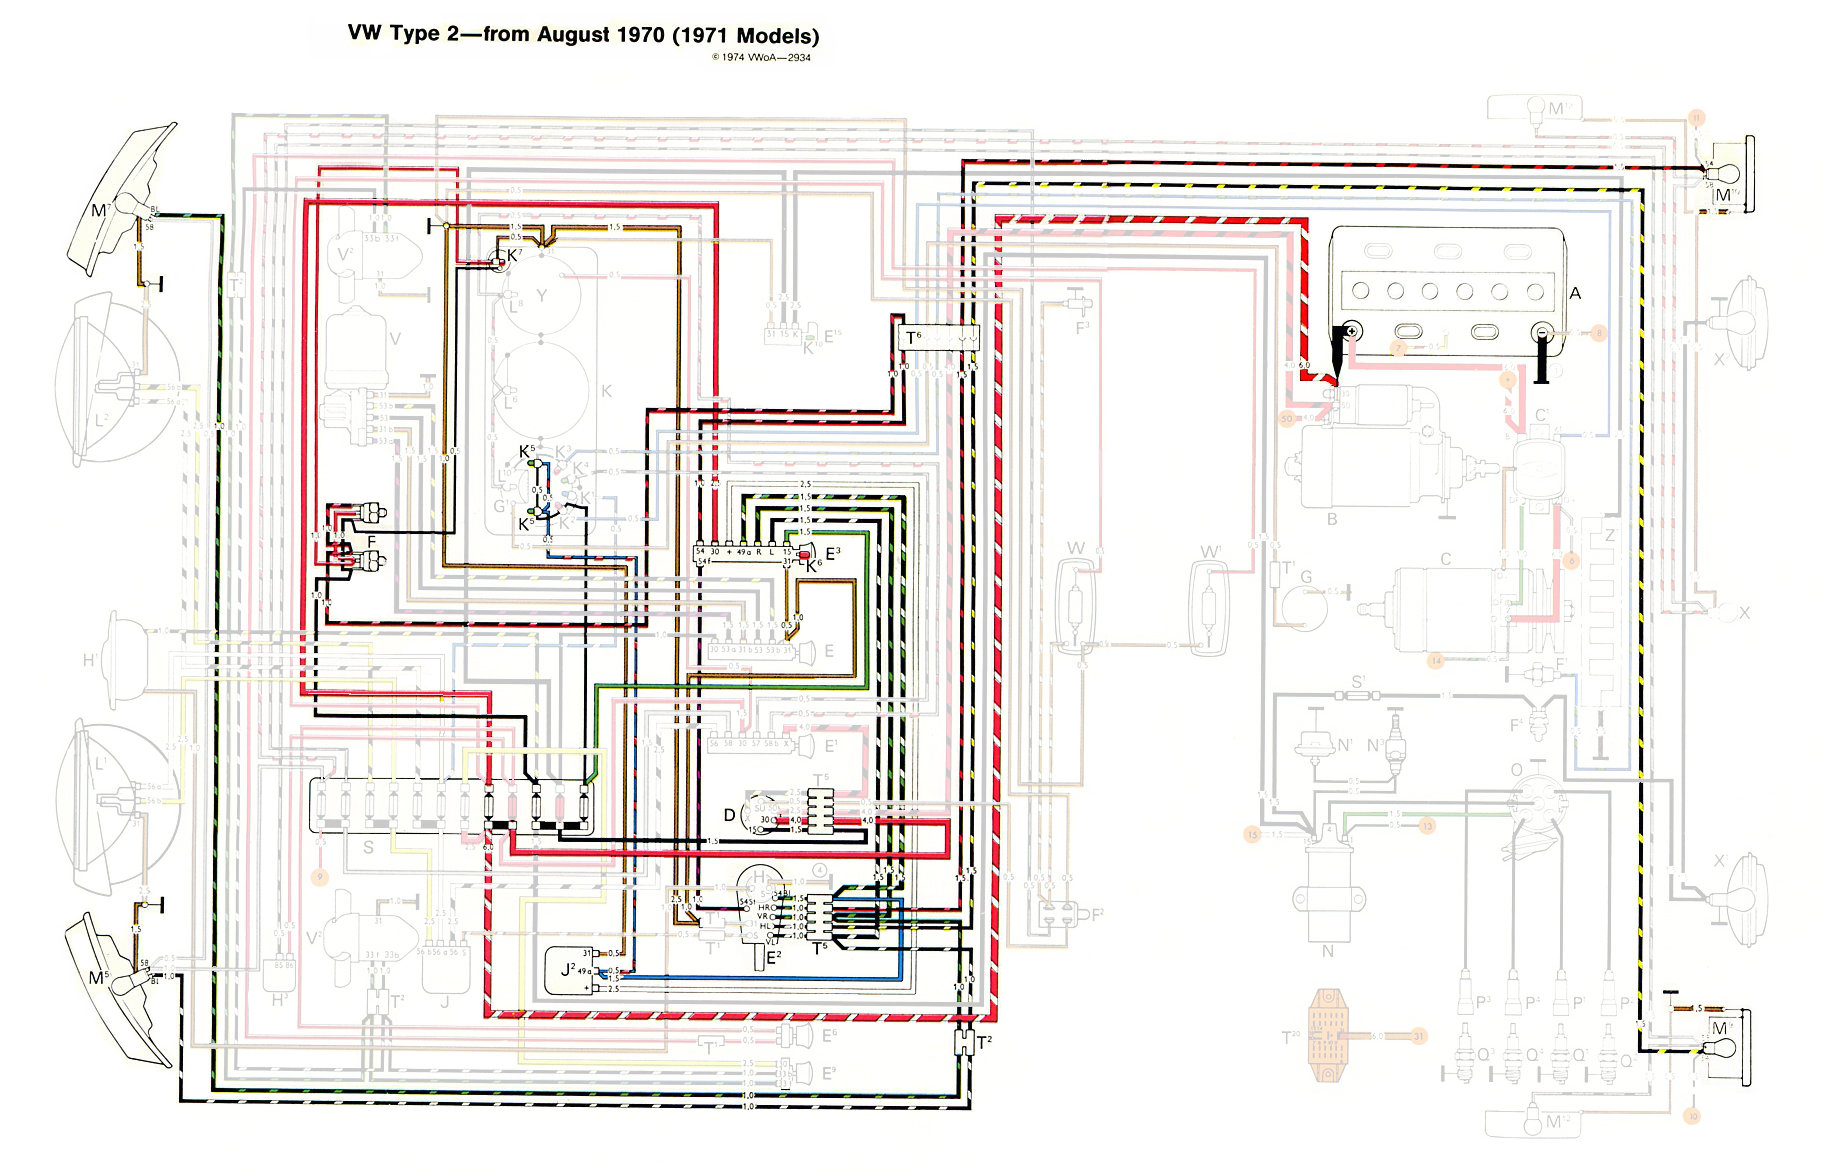 71 vw bus wiring diagram simplex addressable fire alarm system fuel line free engine image for user manual